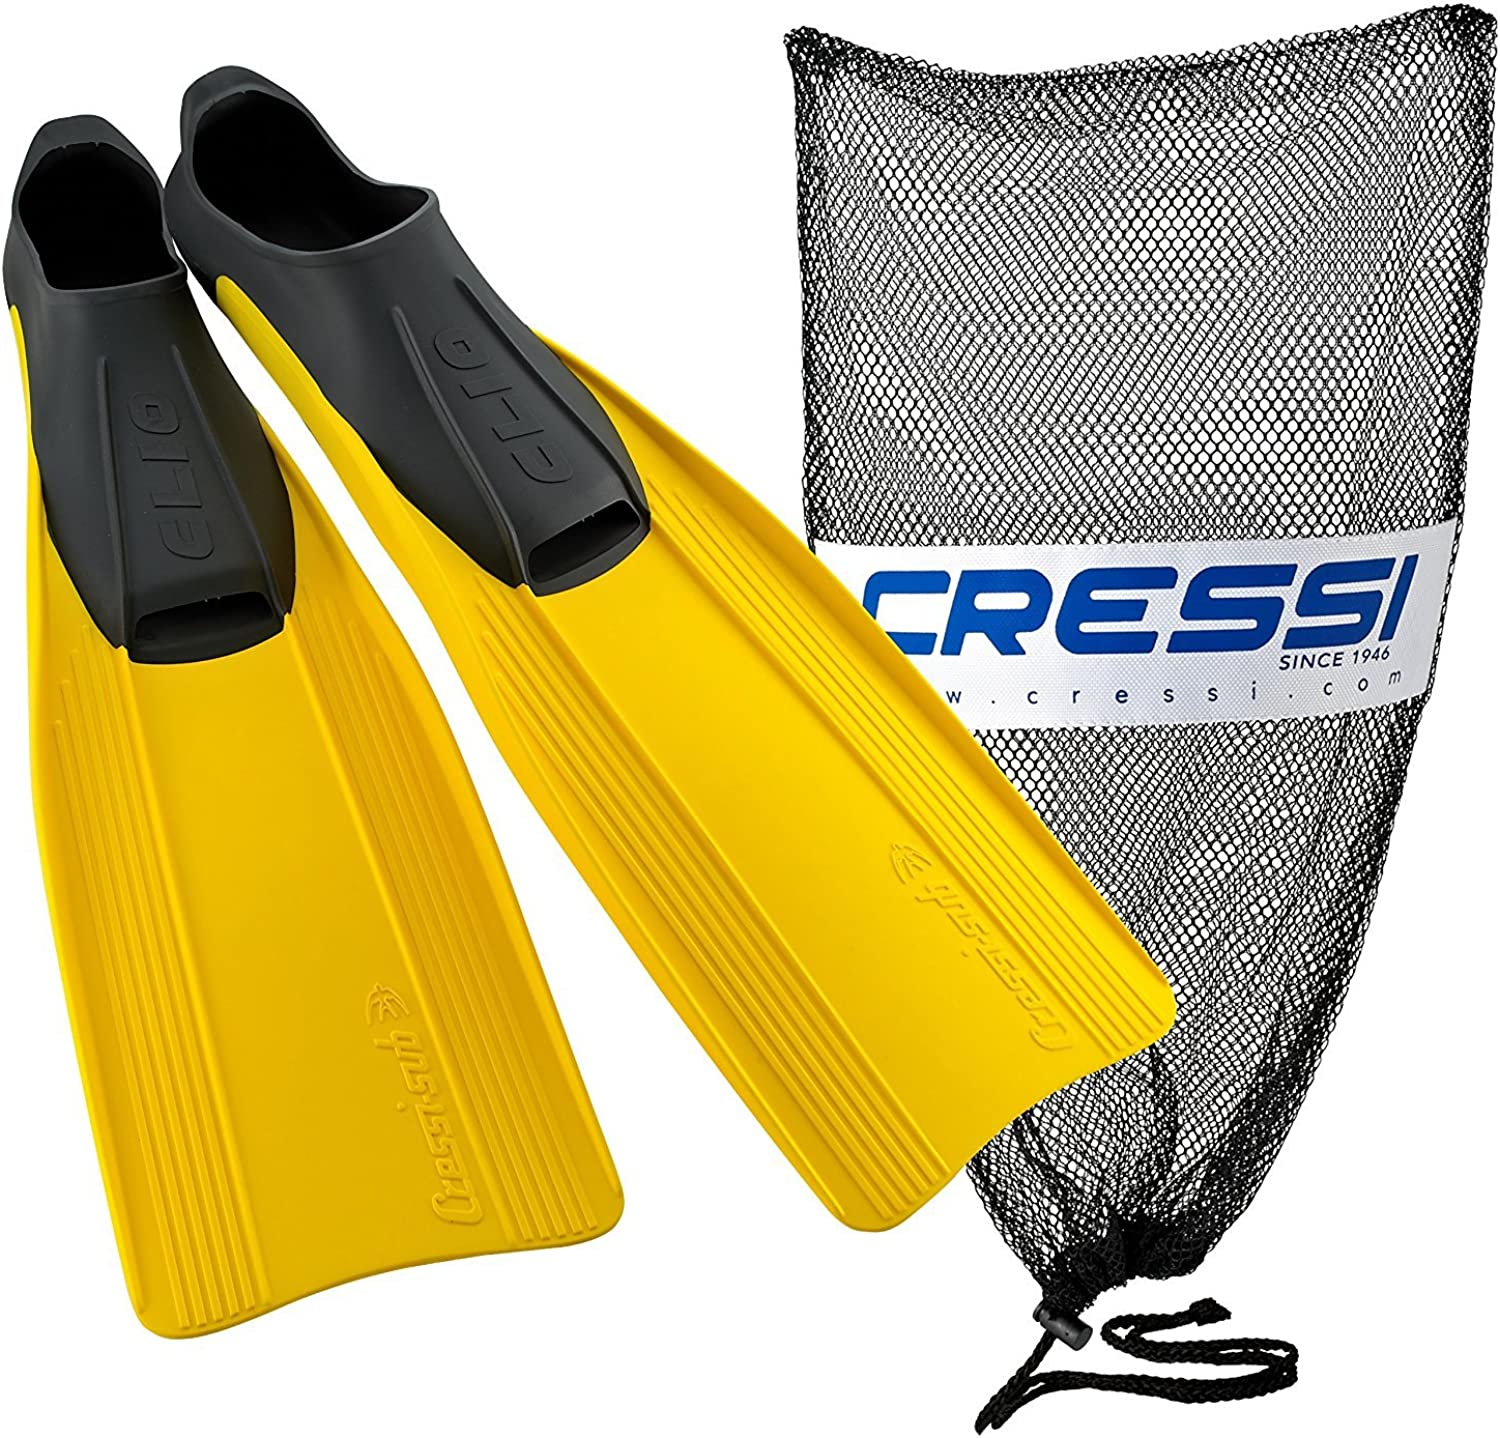 Cressi Clio Full Made in  Foot Fins with Bag, Yellow, EU Size 39 40 - US Men's 5.5 6.5